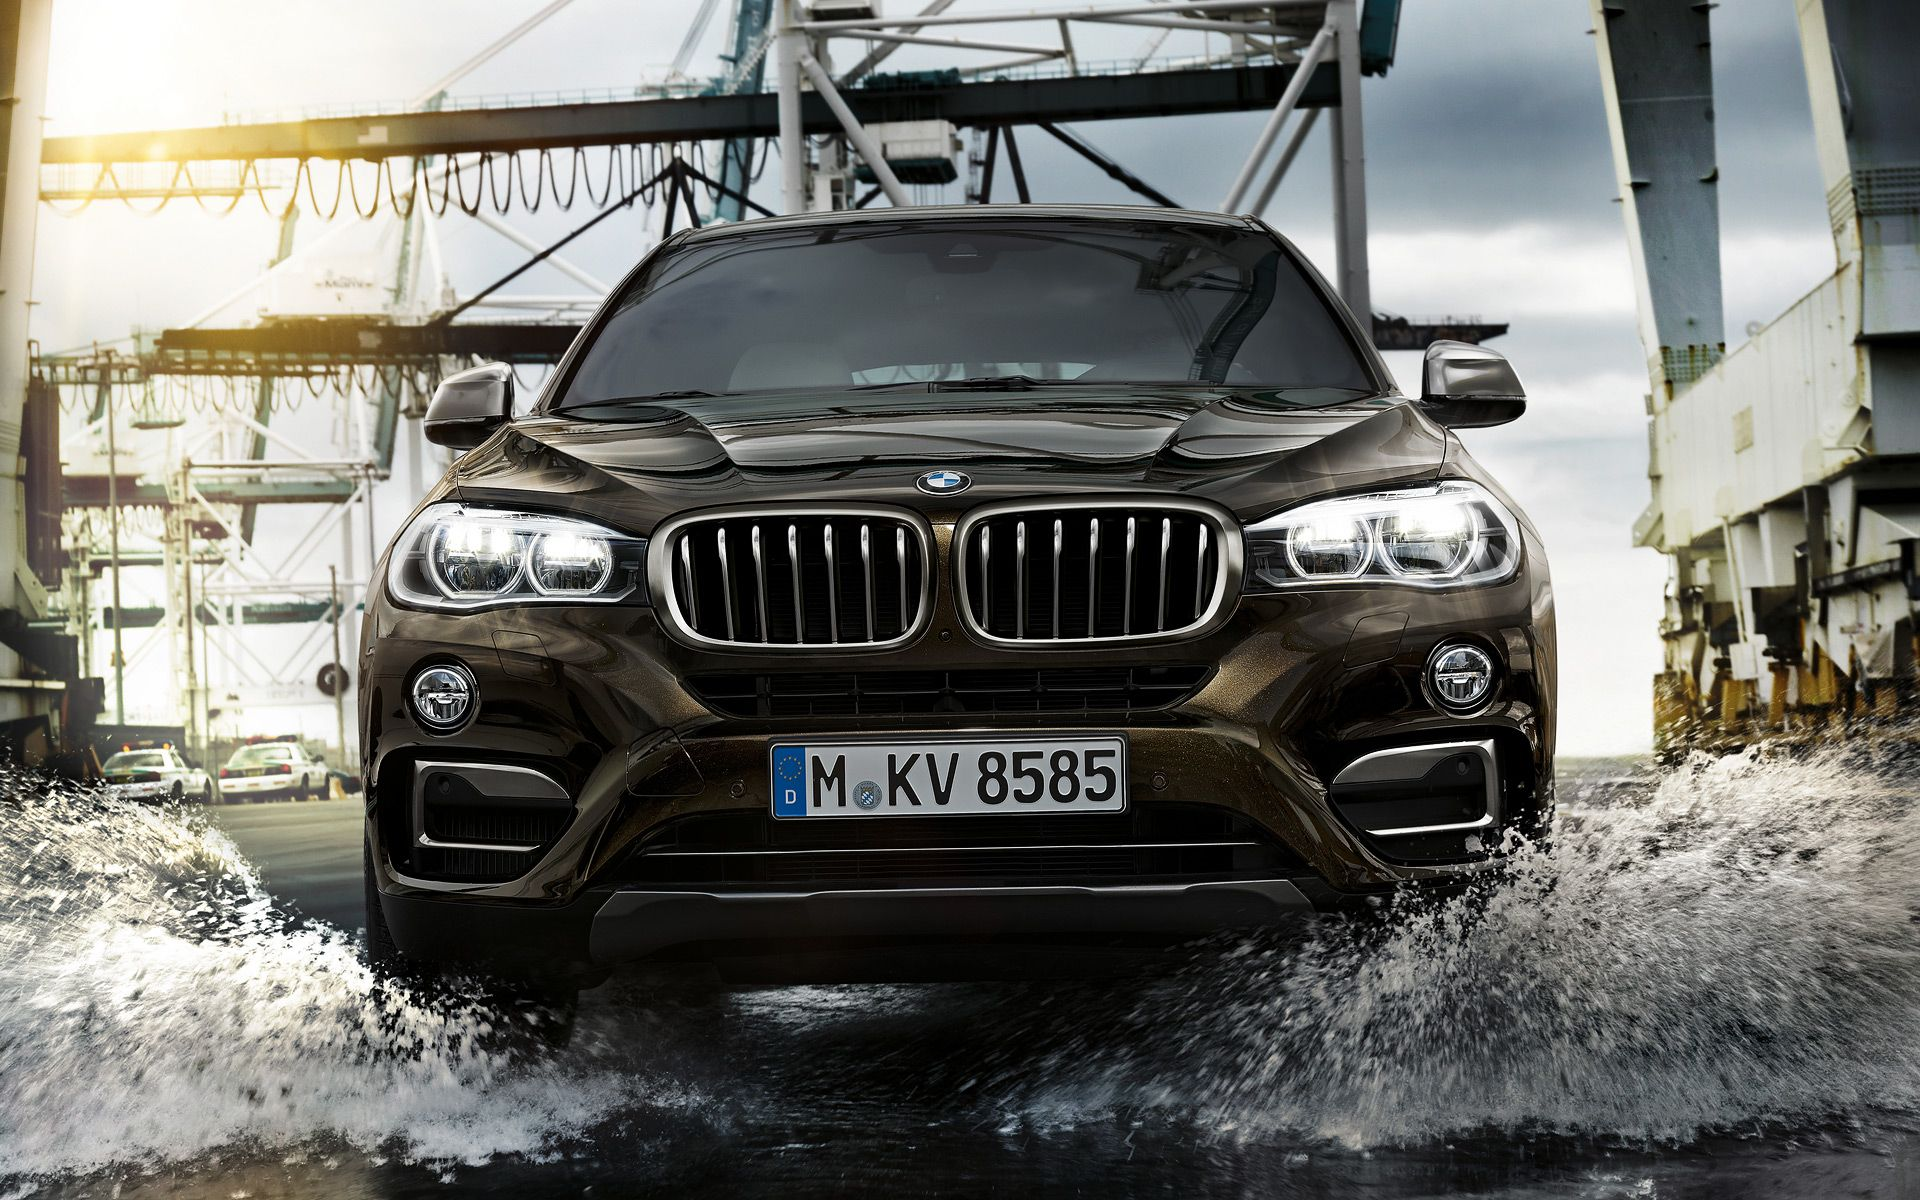 Bmw X6 With Black Metallic Color From Bmw X Series Look So Awesome